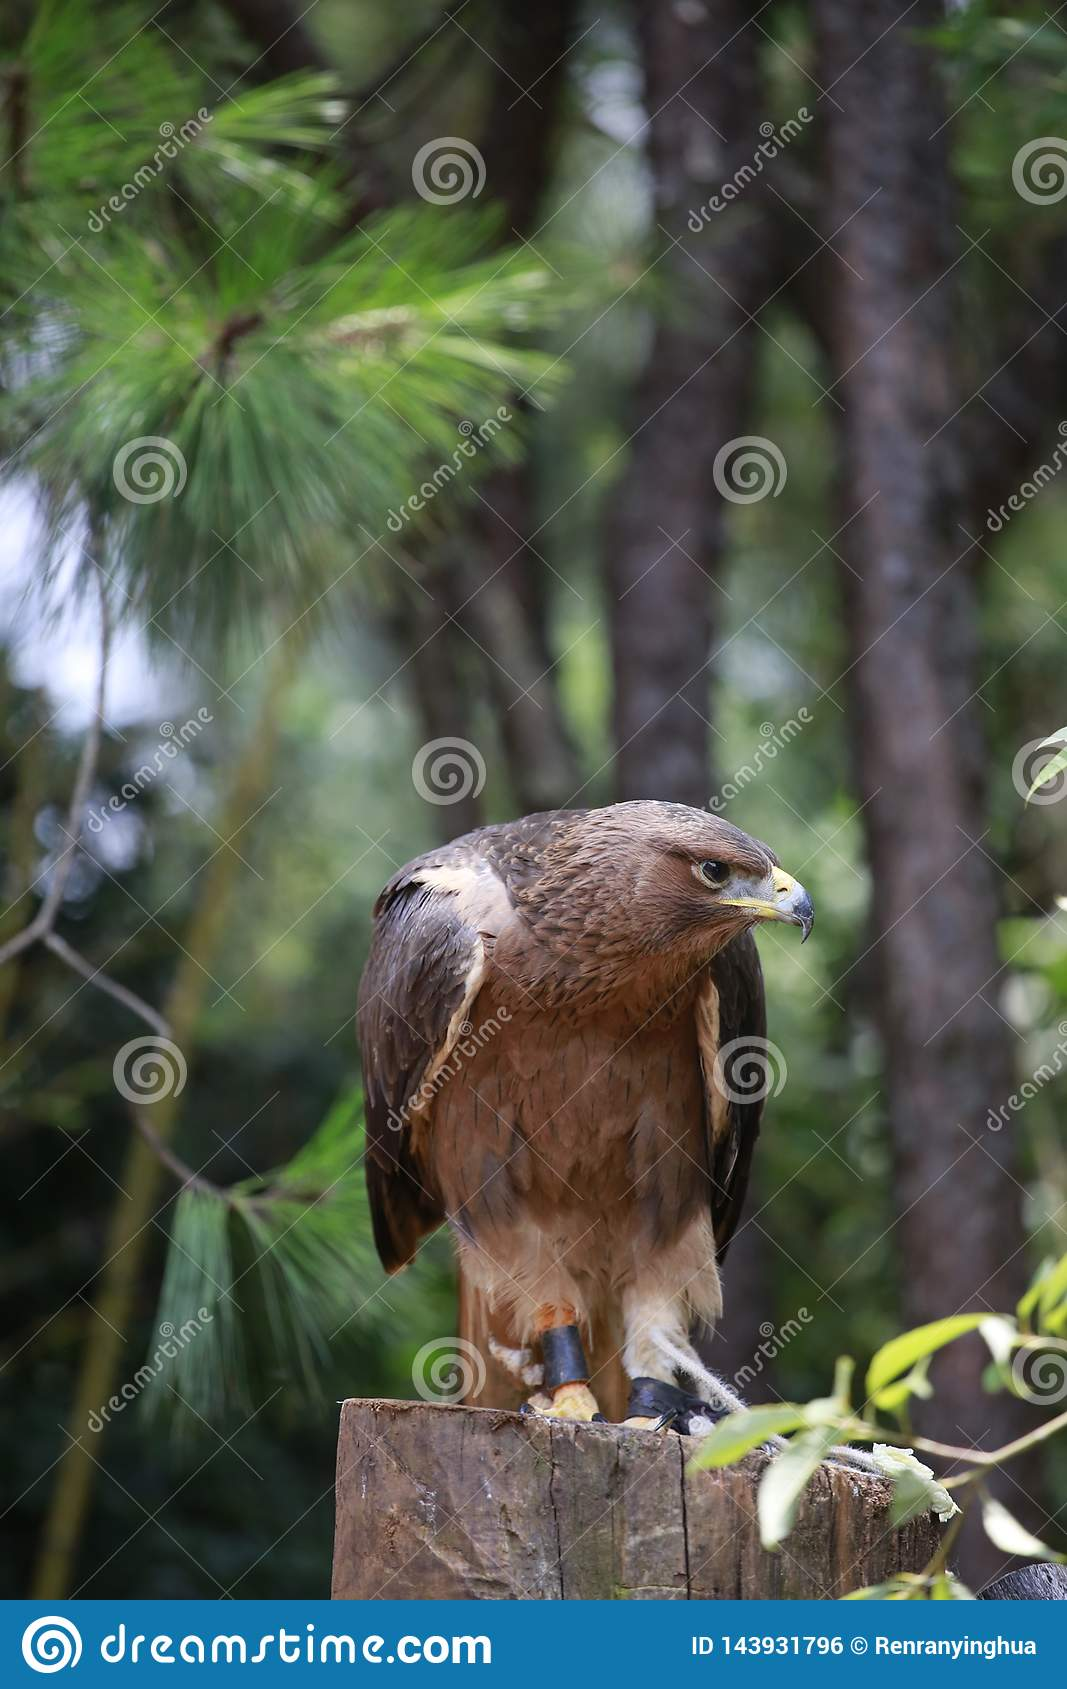 The eagle is a small raptor. Unlike normal birds, females tend to be larger than males. The eagle is fierce, his mouth is yellow,